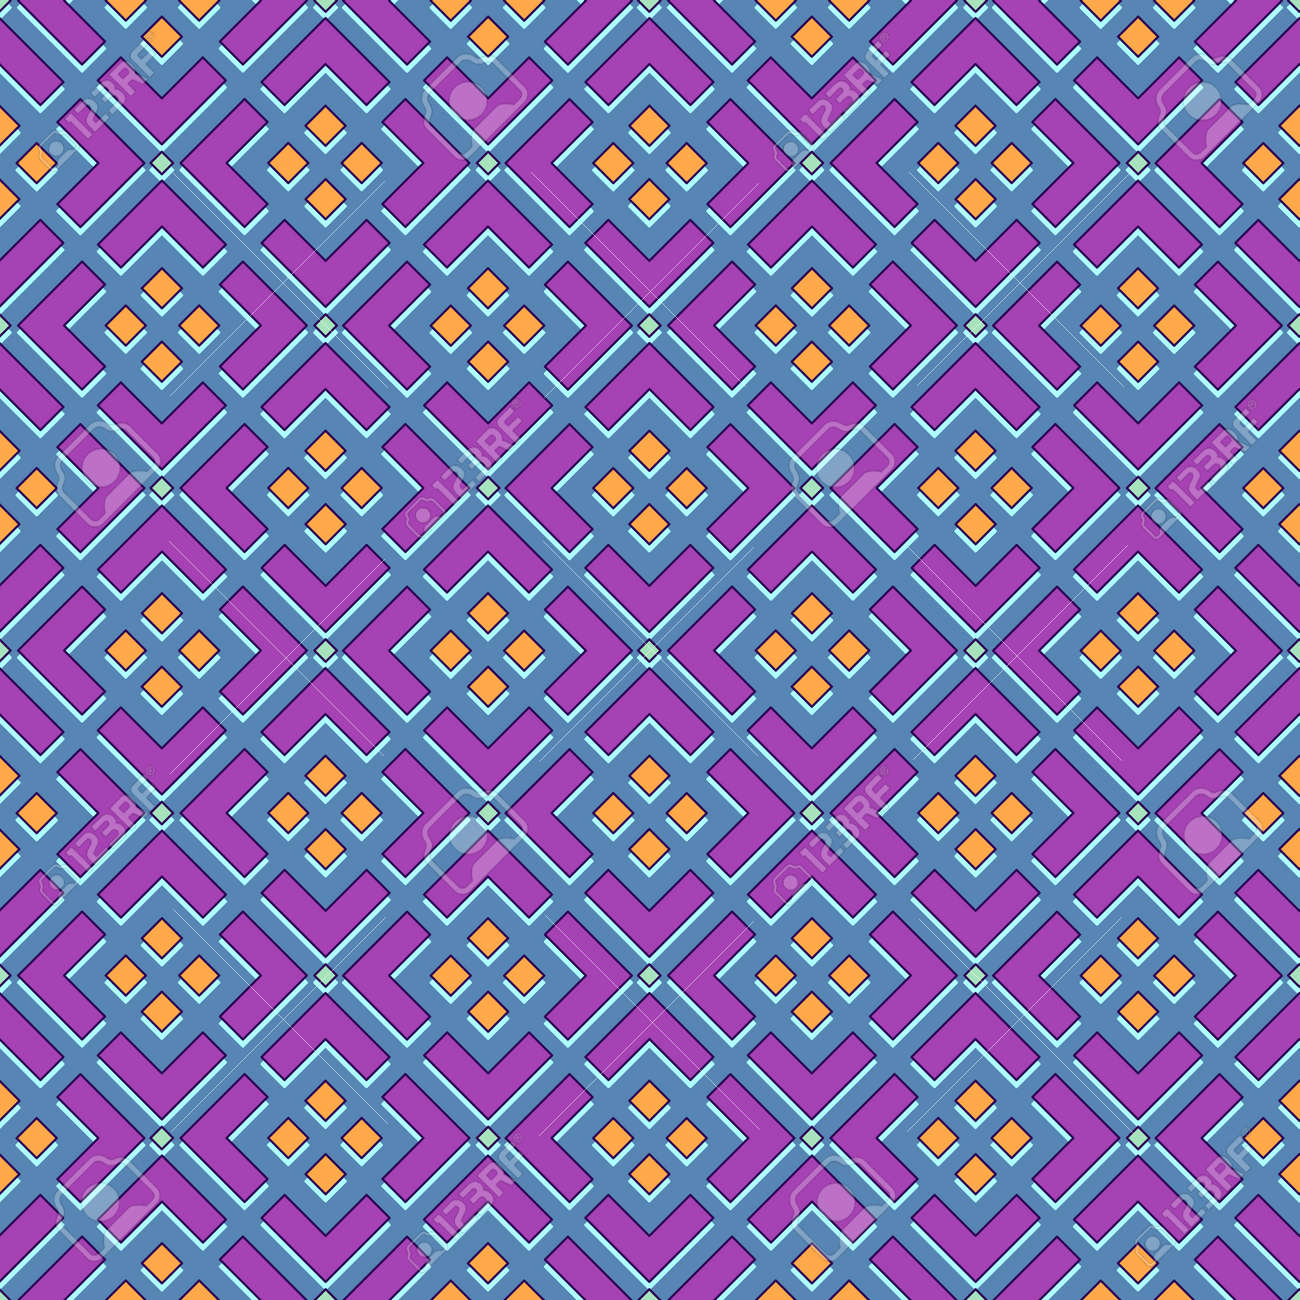 Bright seamless geometric print, abstract curly blue mesh with orange rhombuses, fuchsia background. Great for decorating fabrics, textiles, gift wrapping, printed matter, interiors, advertising. - 167343307